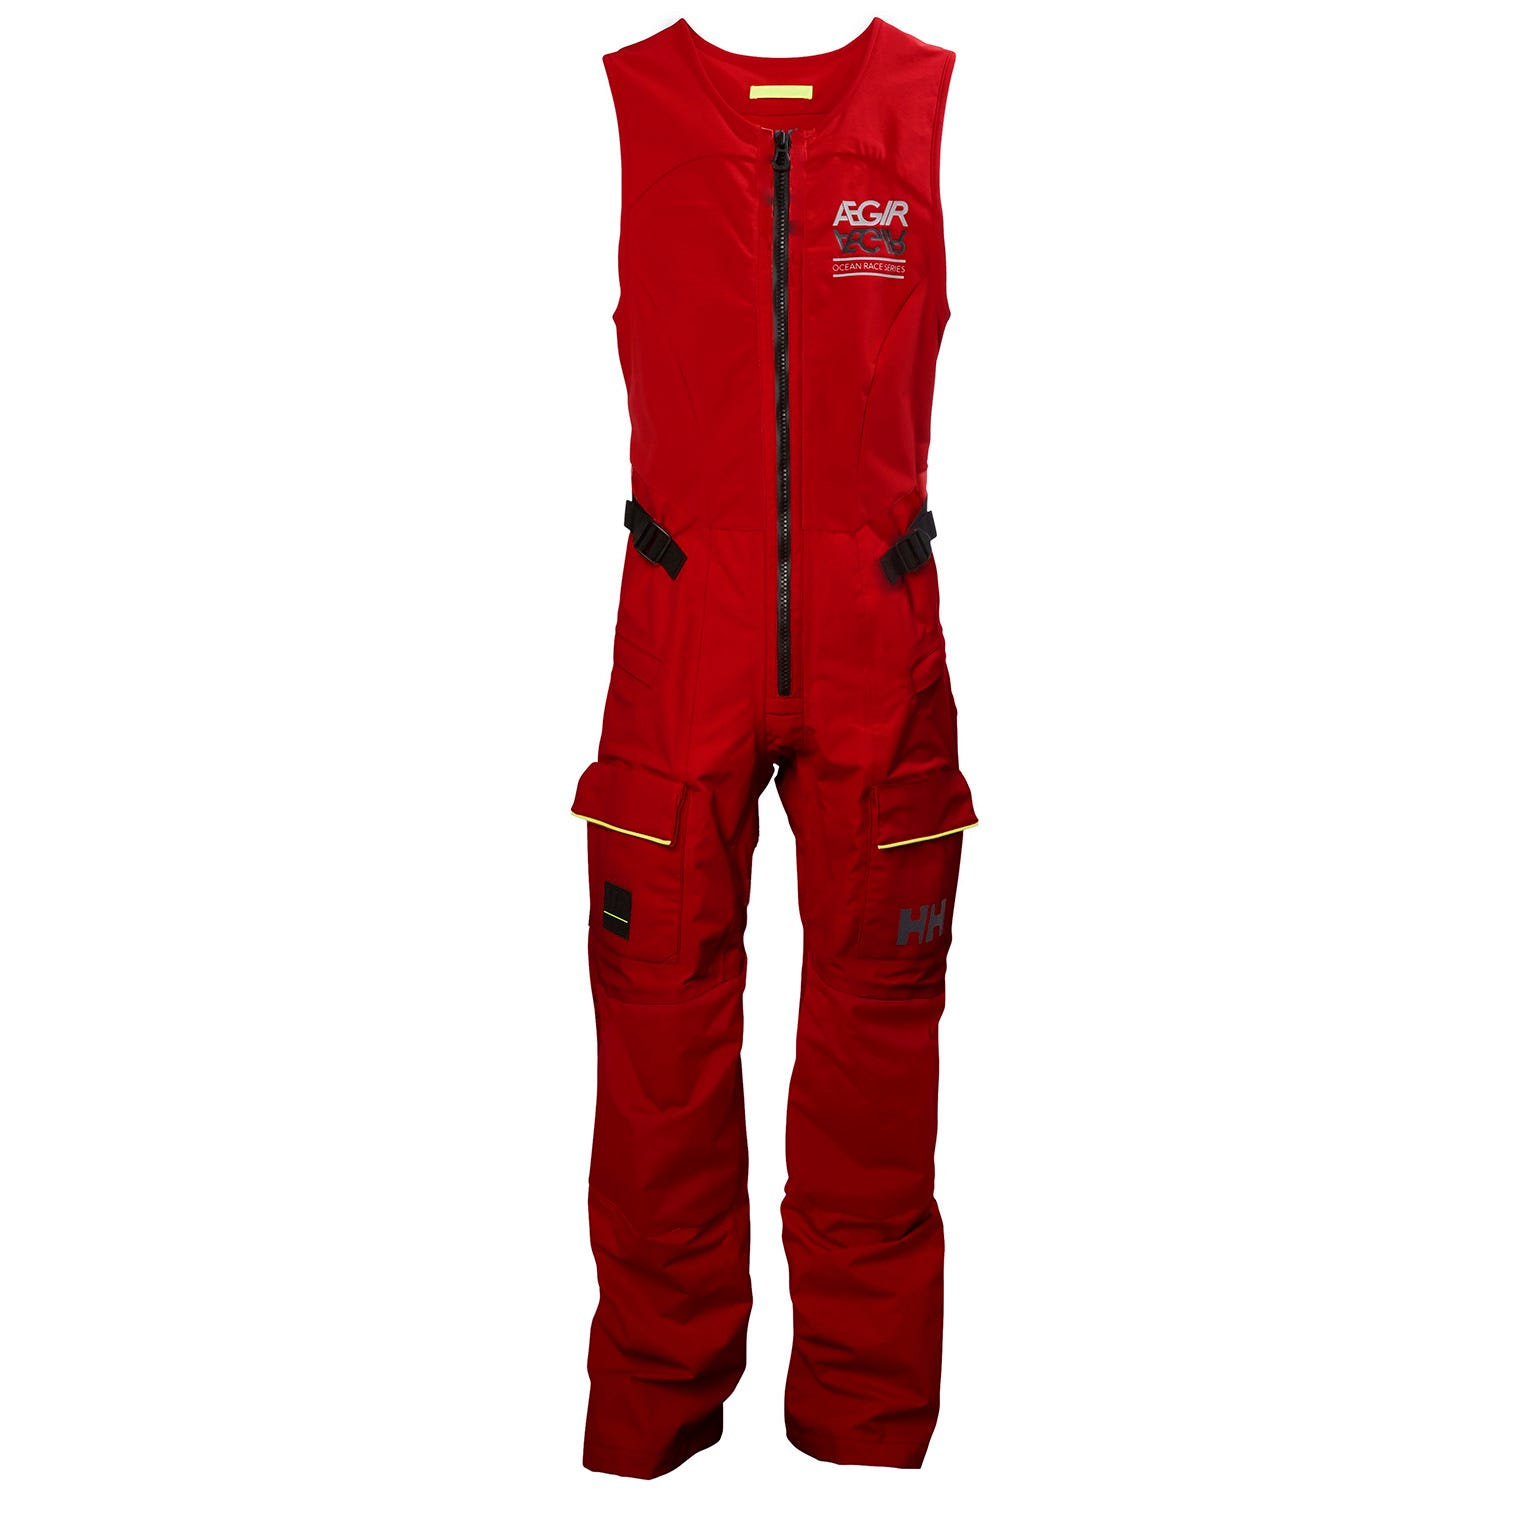 Helly Hansen Womens Aegir Race Sailing Salopette Red S